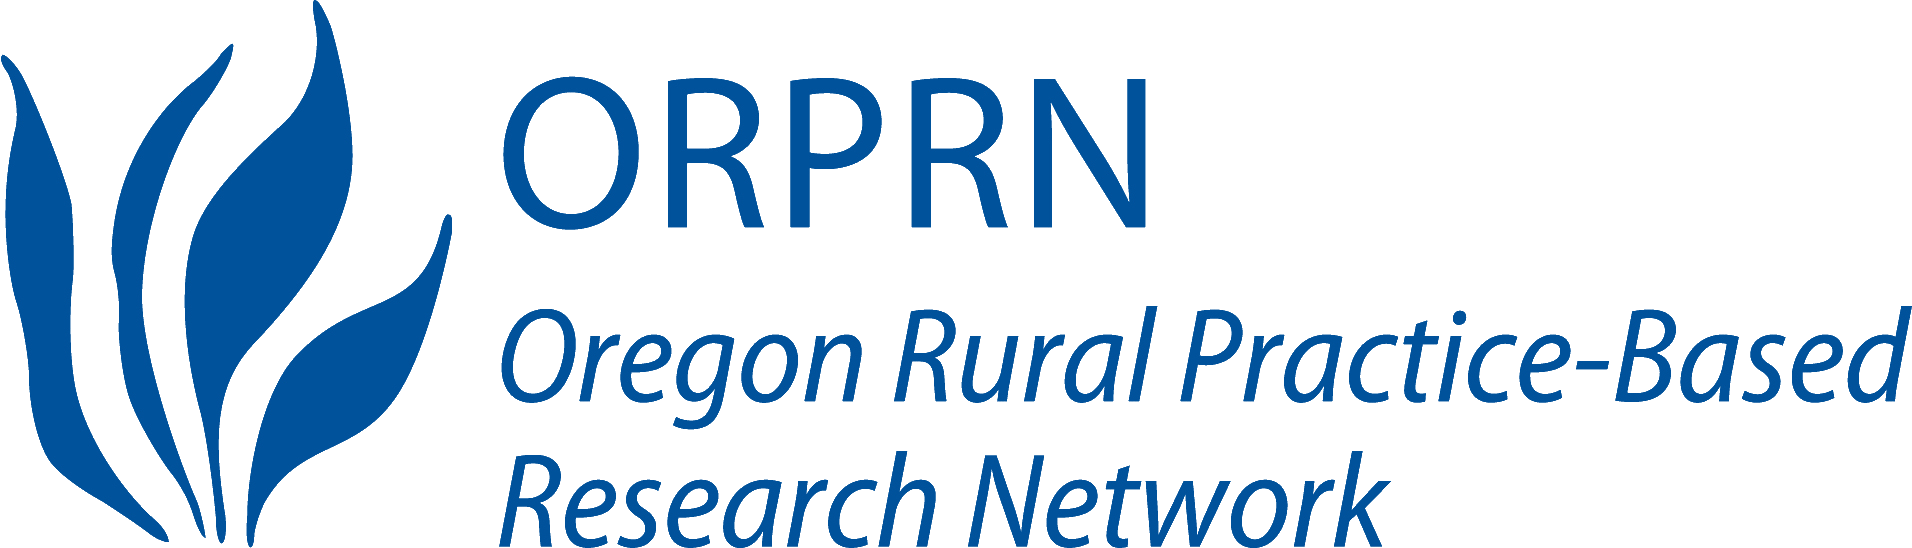 ORPRN logo - blue Transparent.png